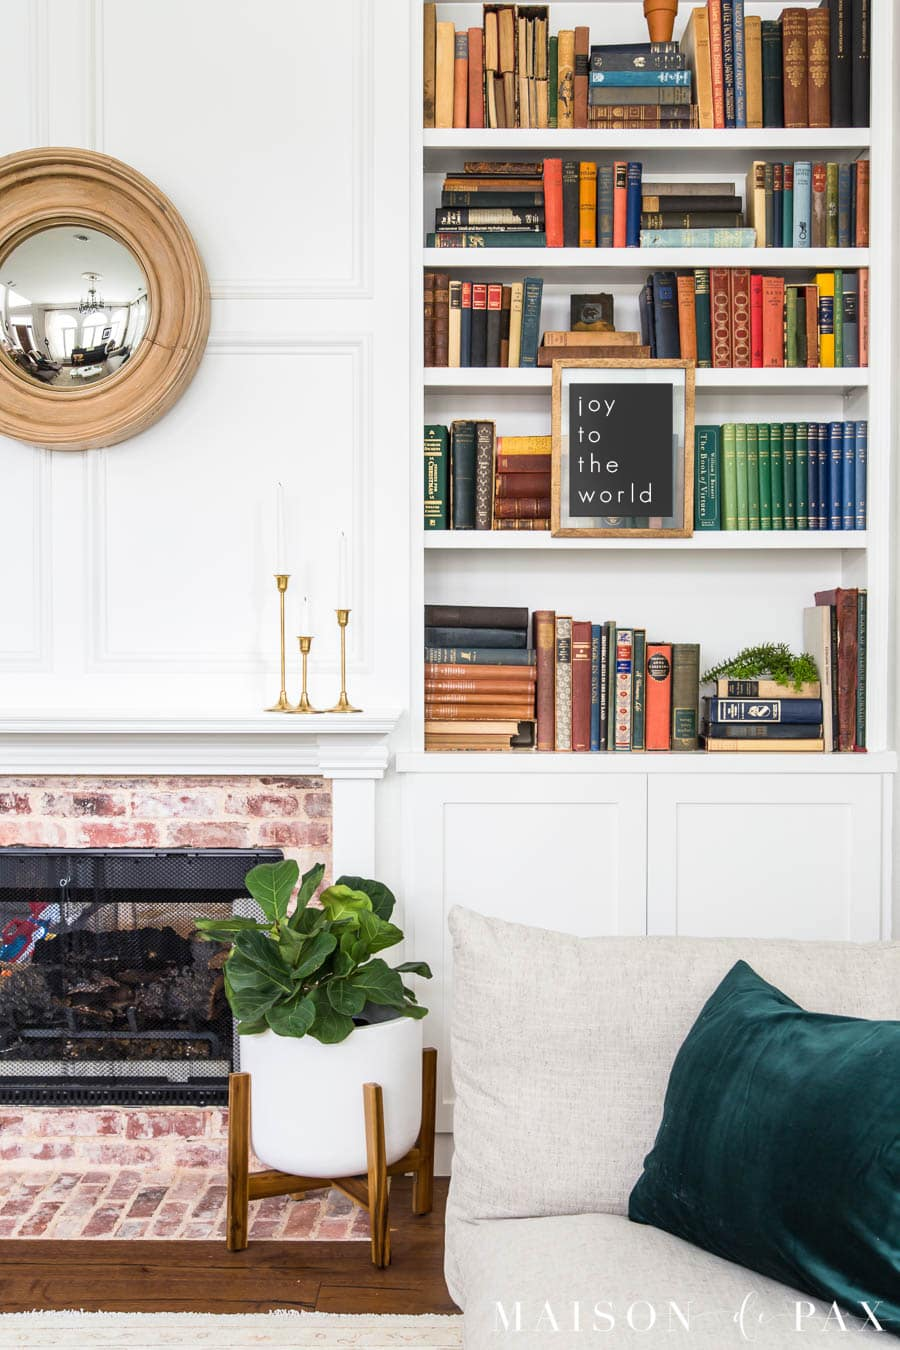 bookcase with antique books and fiddle leaf fid | Maison de Pax